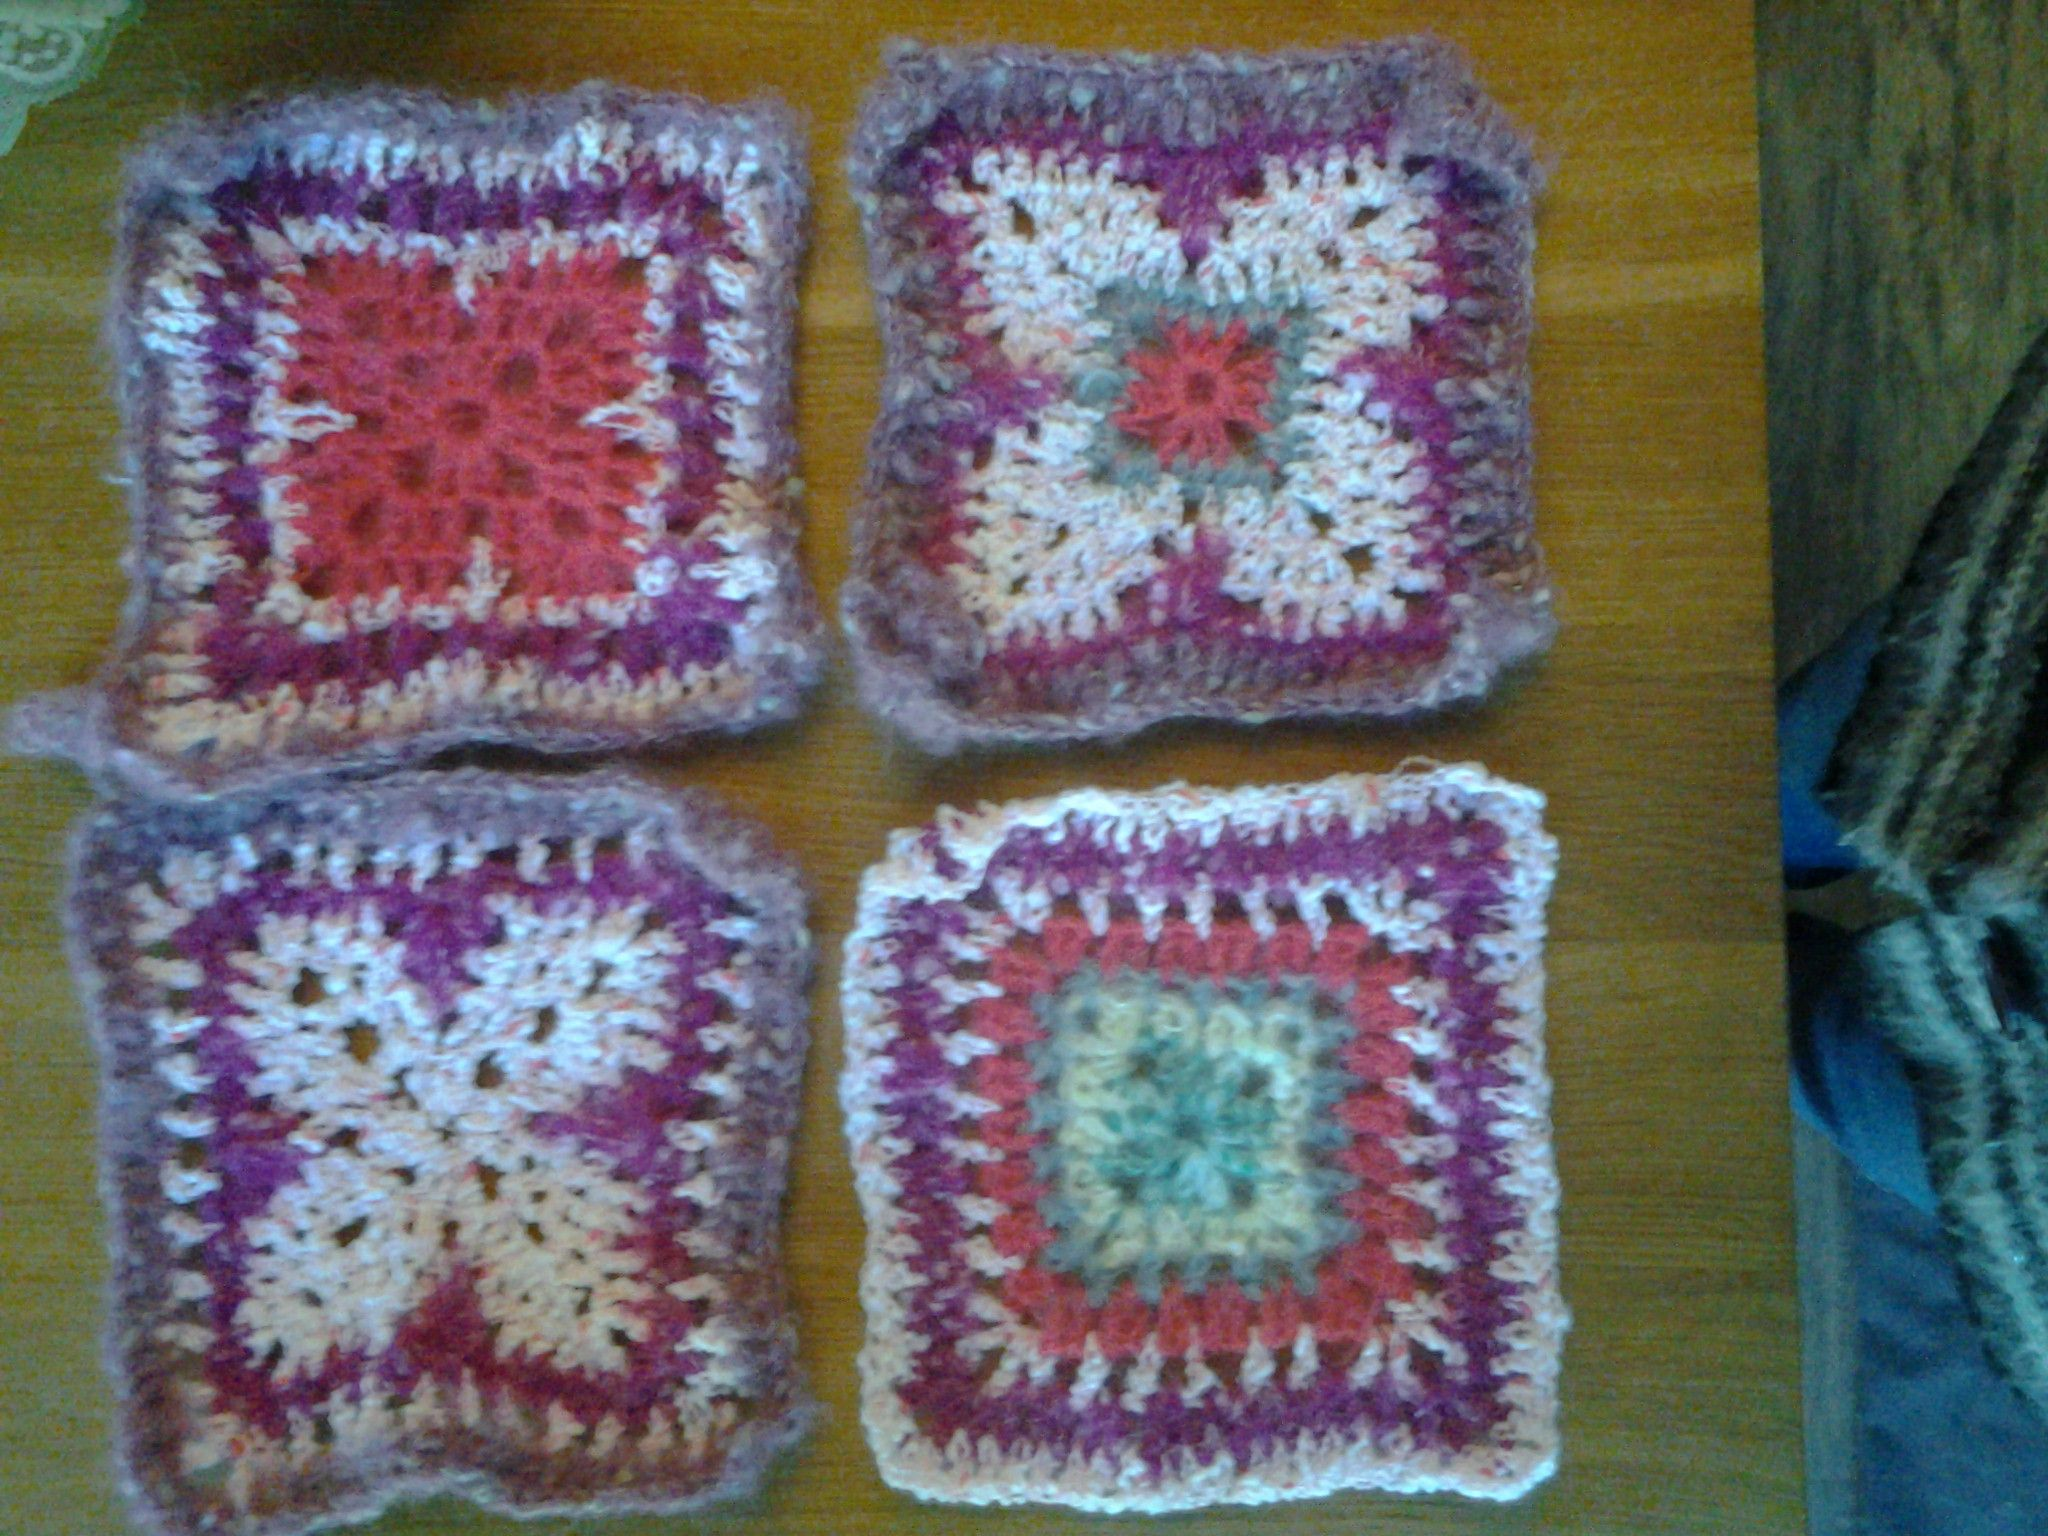 8 Inch Crochet Squares To Go To Kas Knit A Square A Charity In